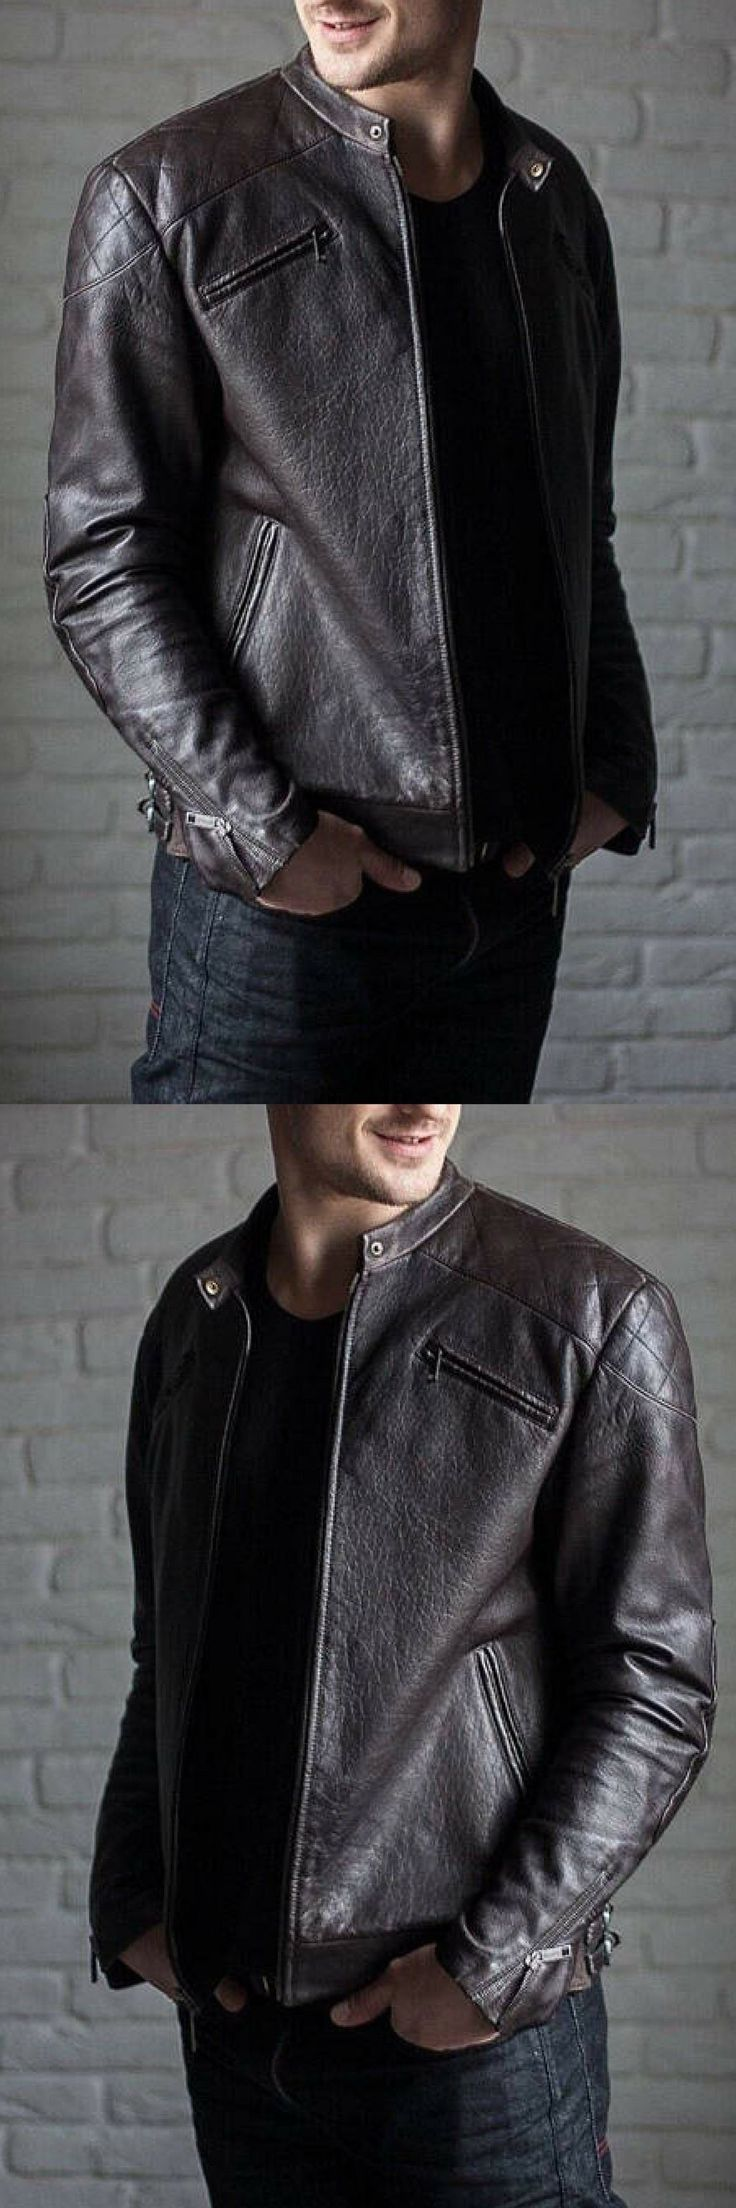 The biker jacket is made from high quality black vintage style leather.  Shoulders and back side of sleeves are decorated with cross stitched  details. The leather motorcycle jacket is zipped in the front and  finished with four zipped pockets. The bottom of the sleeves are  decorated with zips also.  Men's leather jacket, biker jacket men, leather biker jacket, leather biker jacket men. Mens fashion, men's fashion. #ad #mensfashion